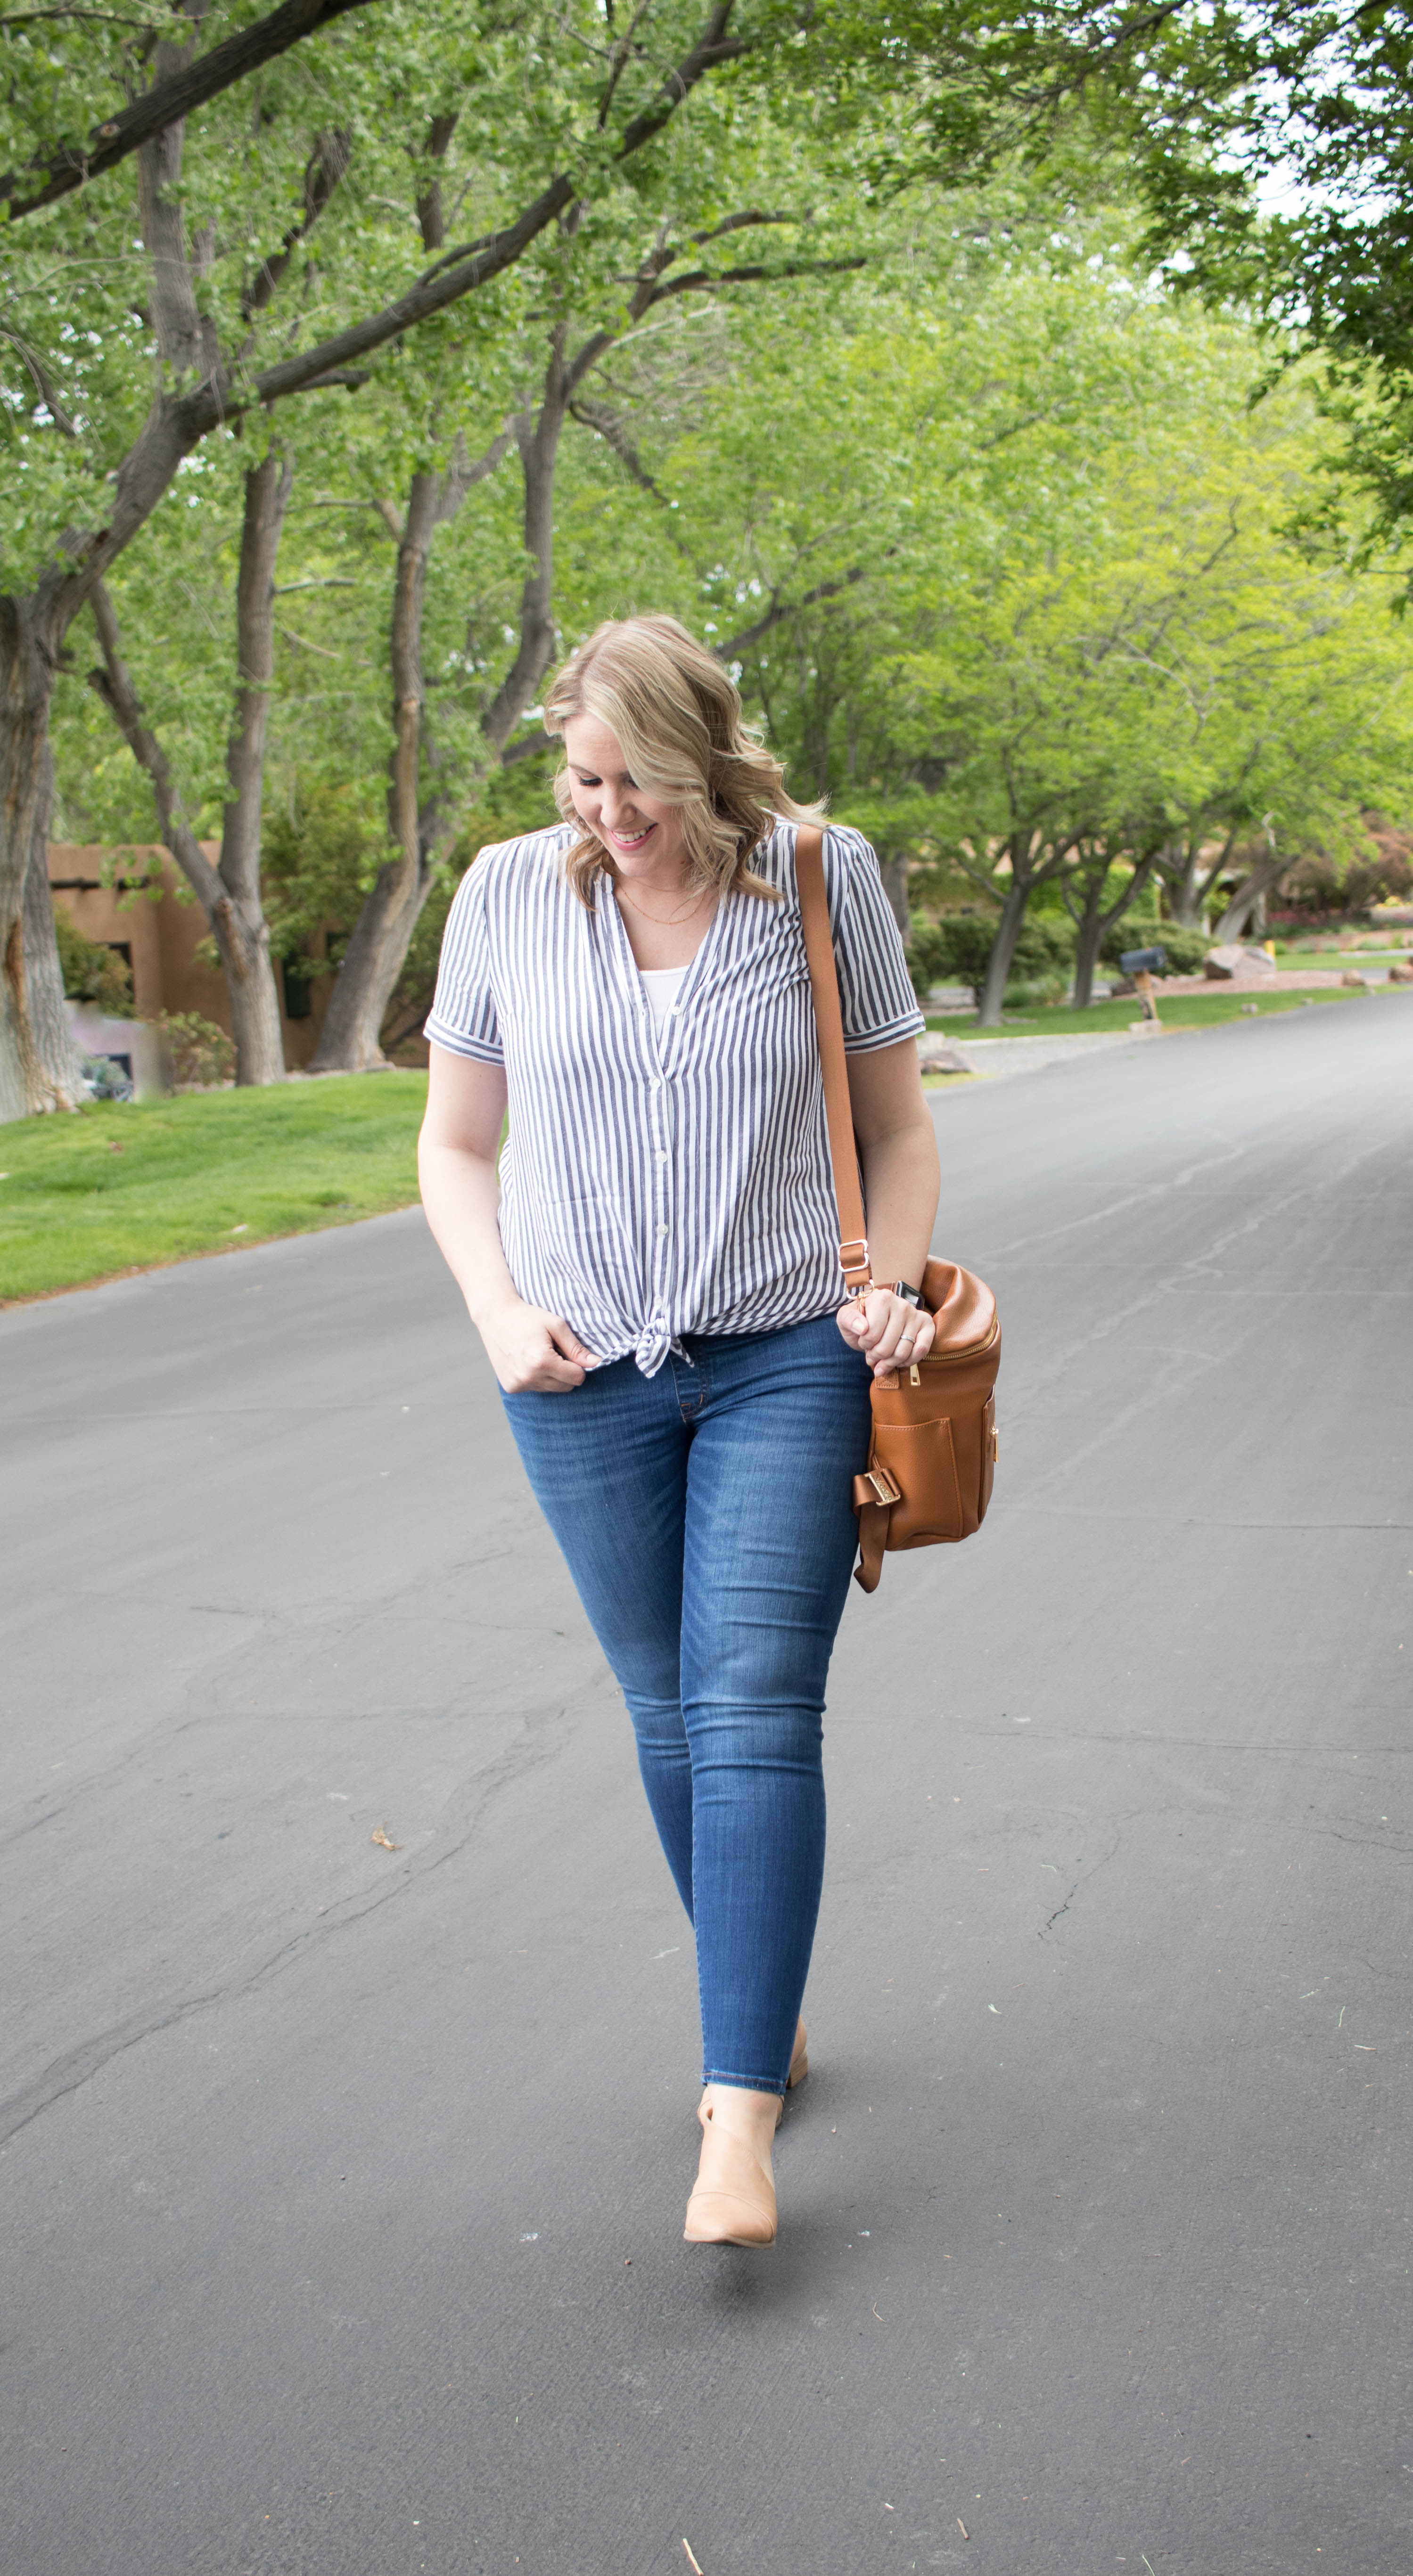 spring maternity style outfit #springstyle #maternityoutfit #bumpstyle